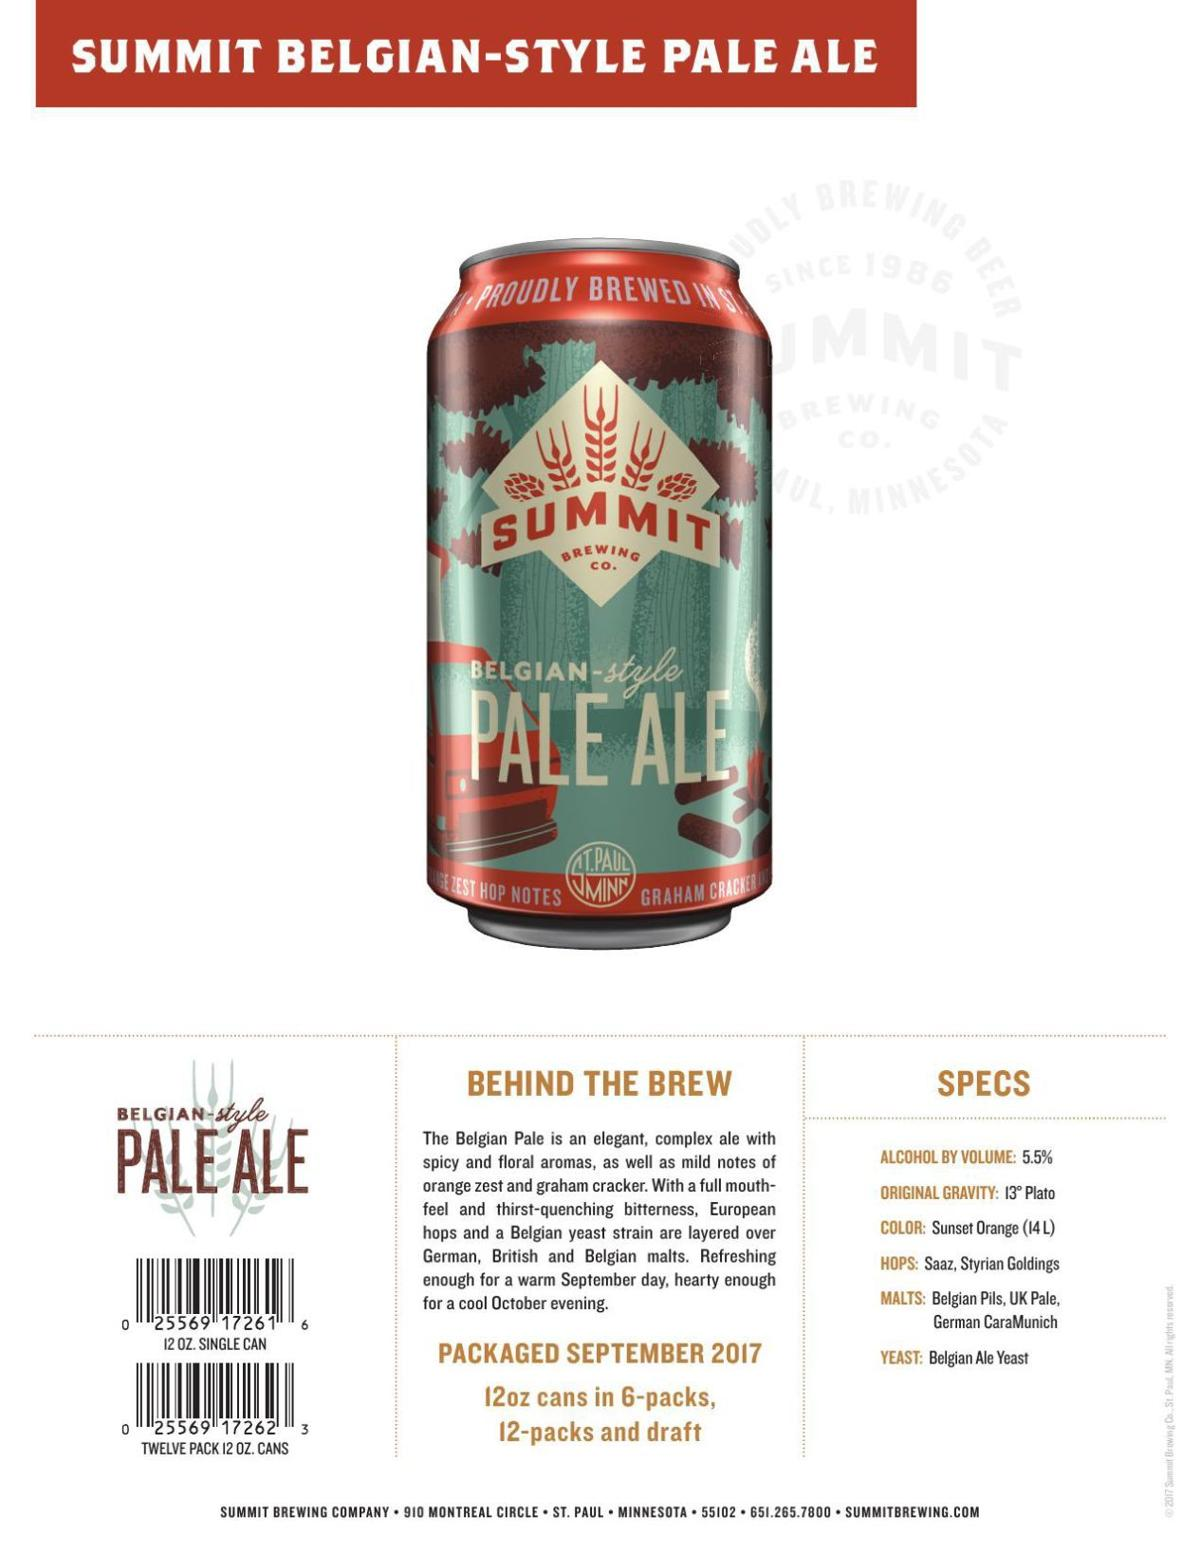 Summit Belgian-Style Pale Ale statistics